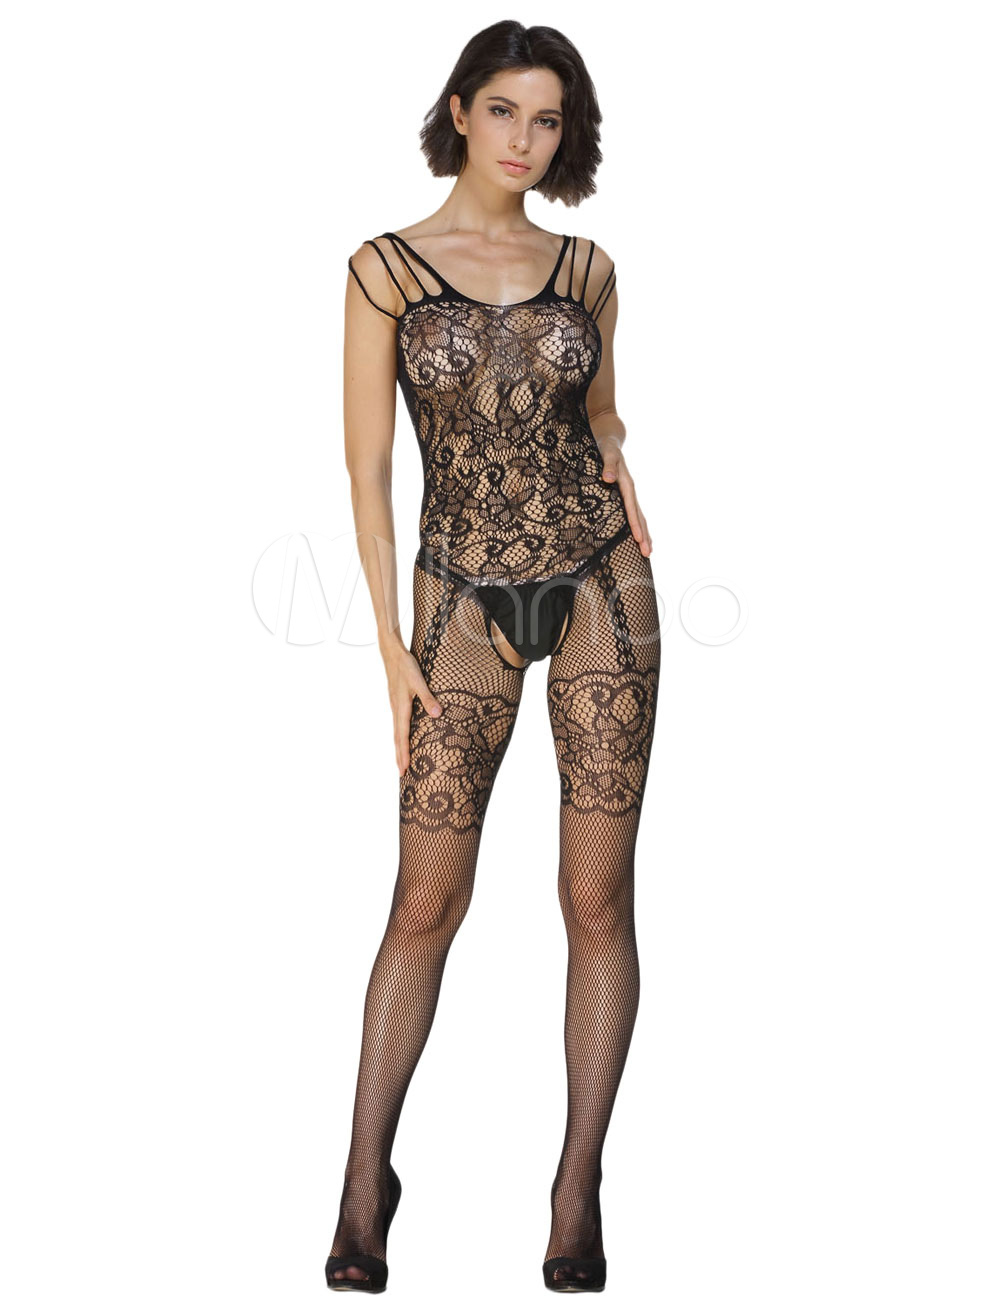 Sheer Bodystockings With Fishnet